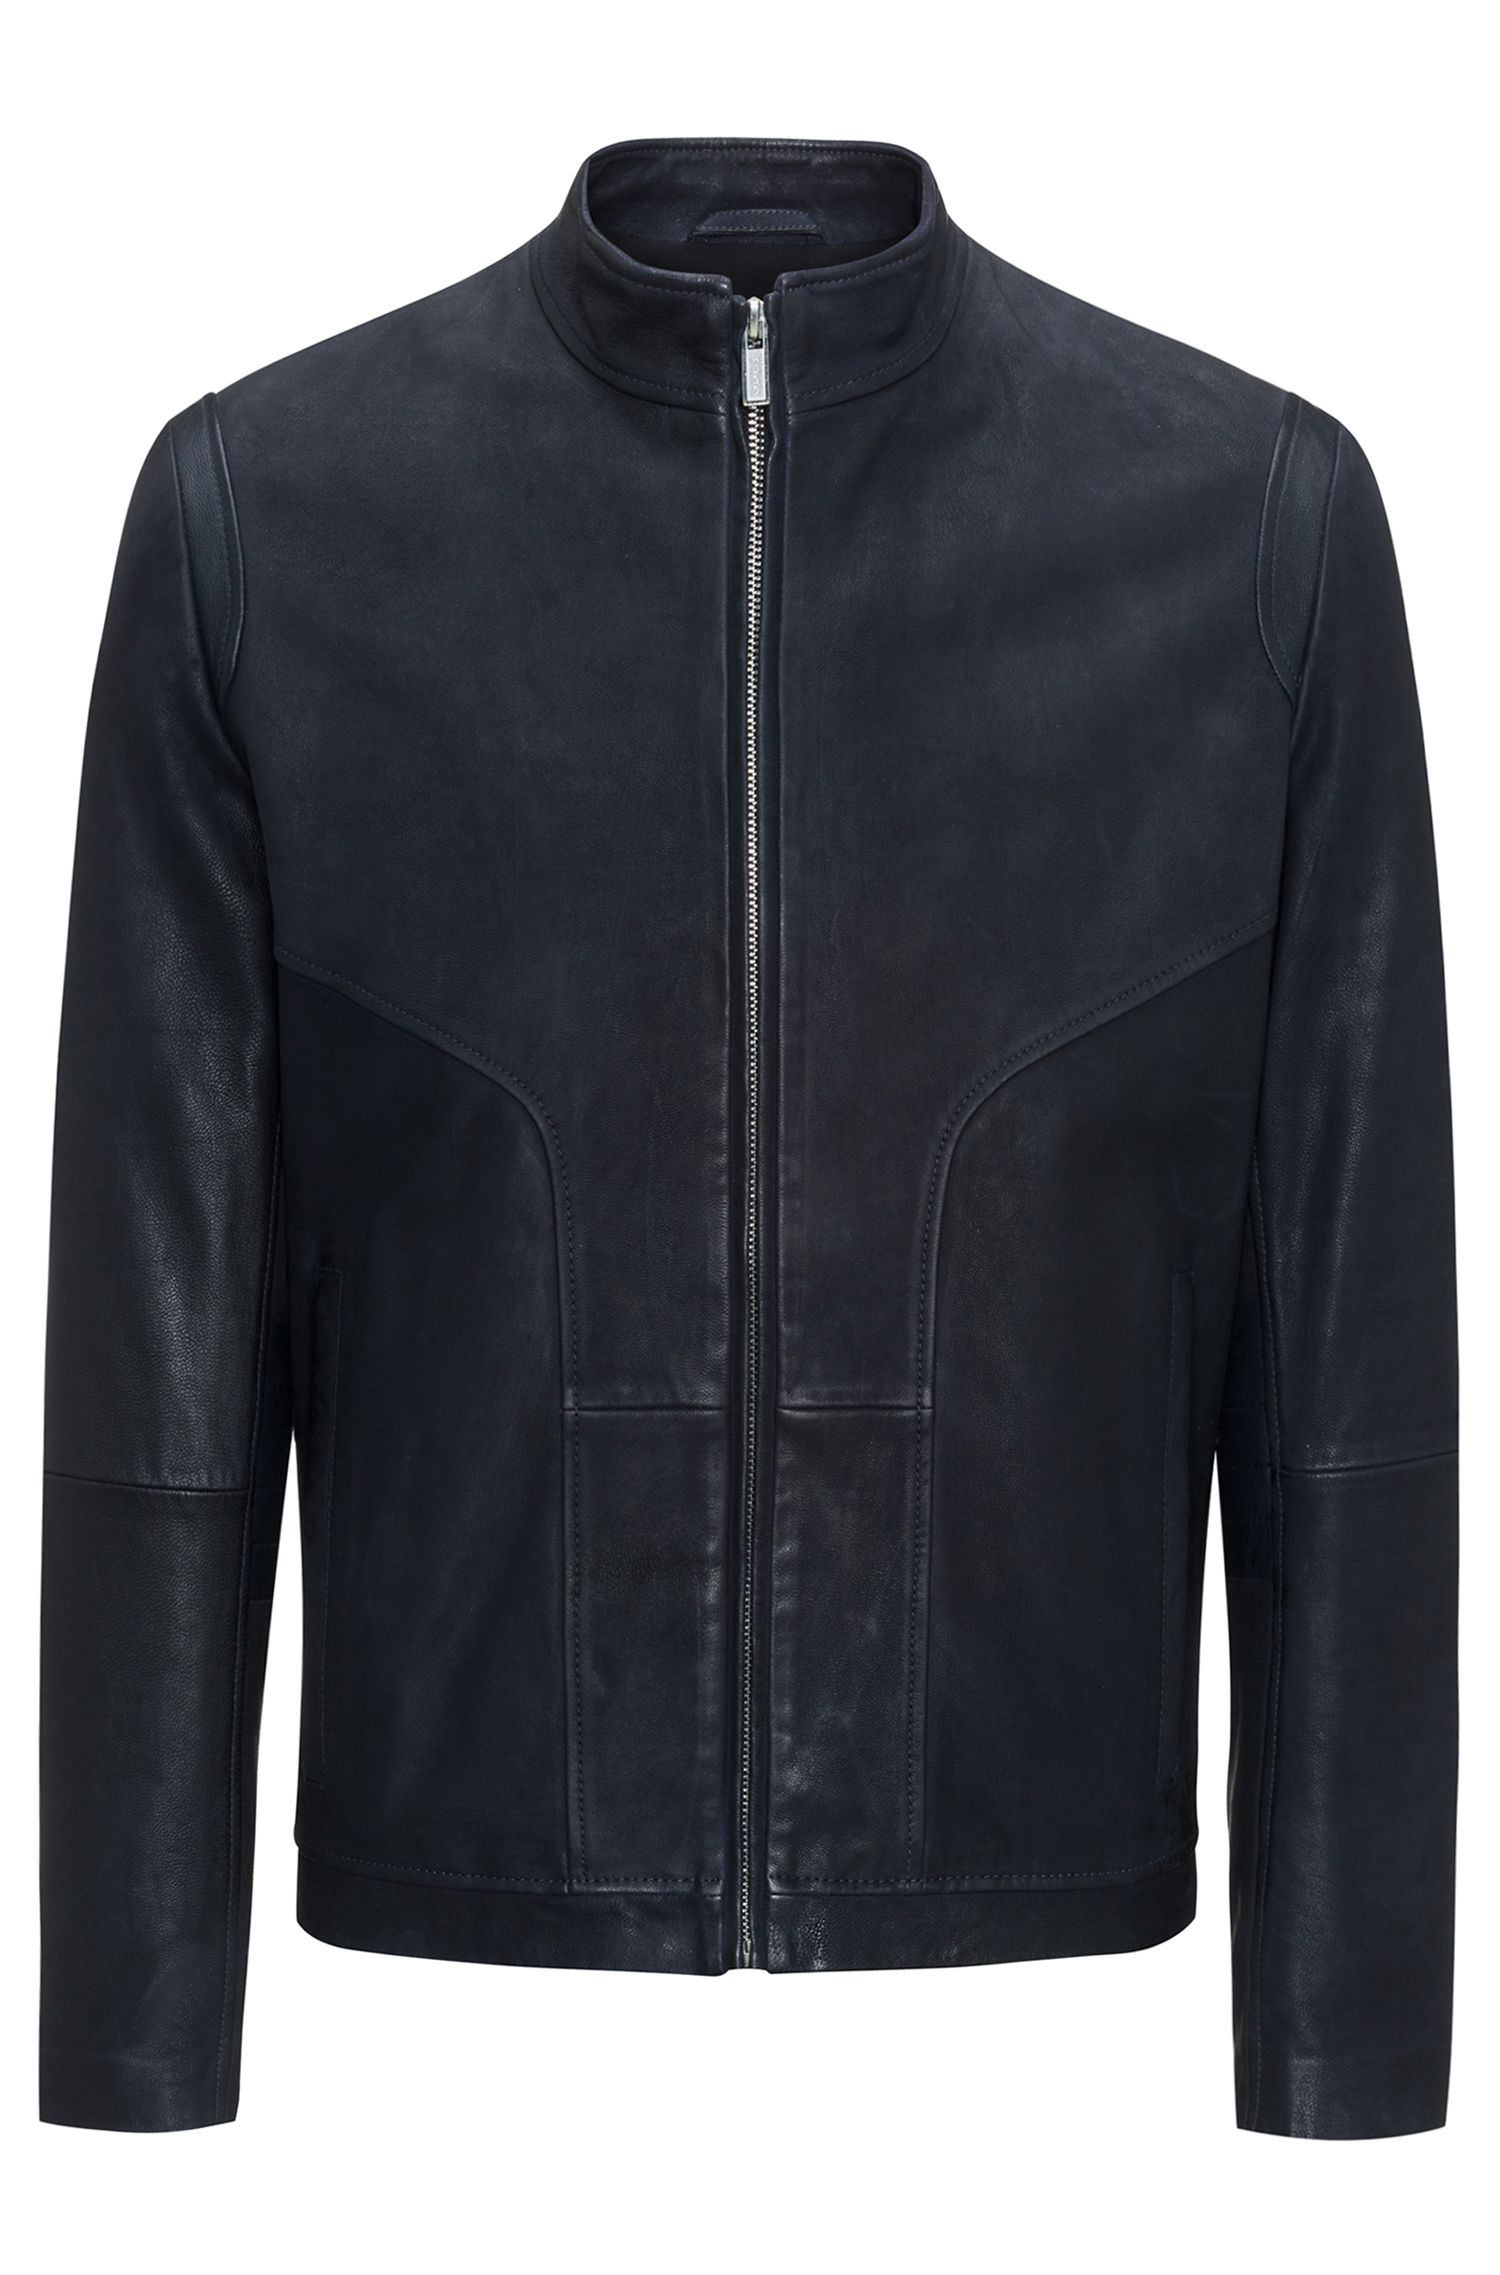 Giubbotto biker slim fit in pelle